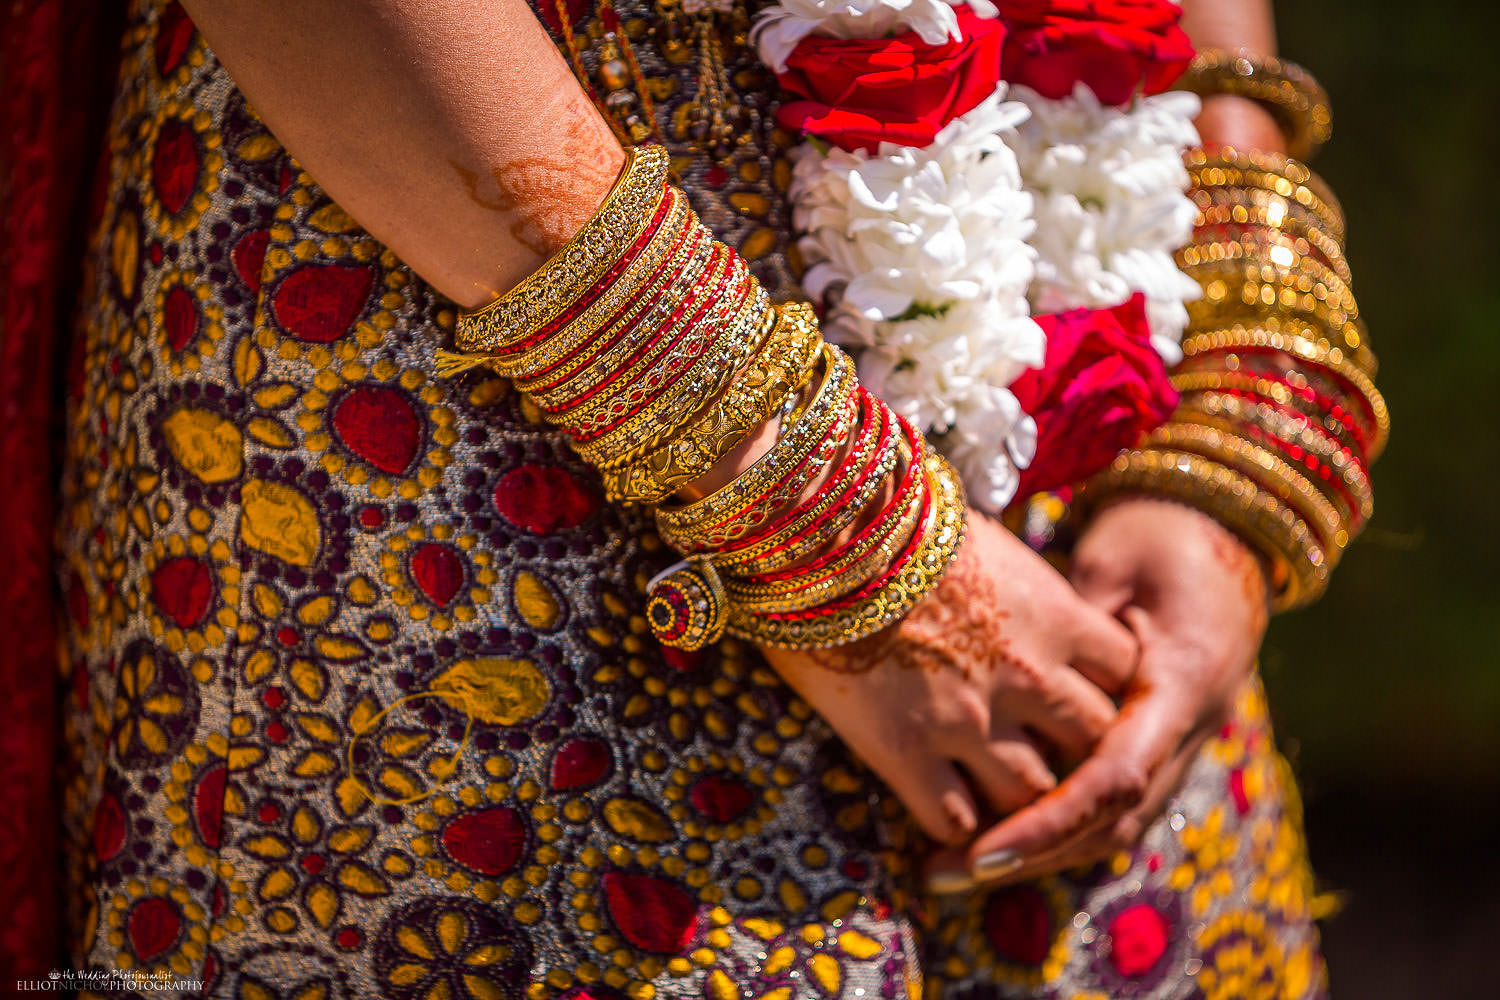 Detail of a Indian Brides dress and jewellery after her Hindu wedding ceremony. Photo by Newcastle Upon Tyne based wedding photojournalist Elliot Nichol.